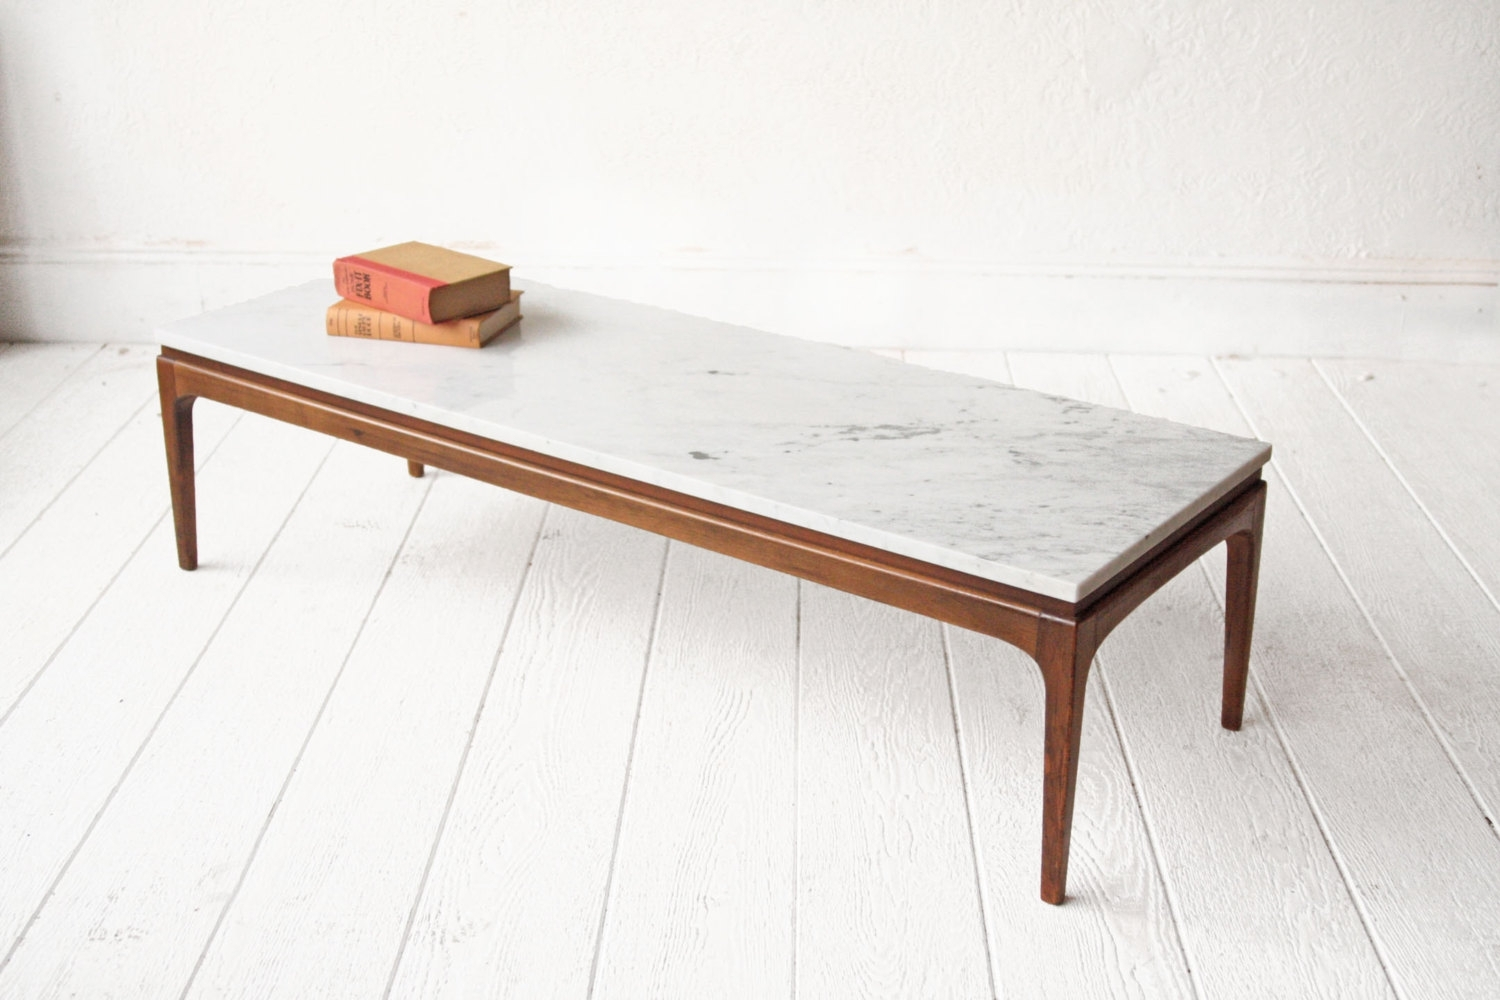 Mid Century Marble Coffee Table: Review Of 10+ Ideas In 2017 within Mid-Century Modern Marble Coffee Tables (Image 11 of 30)